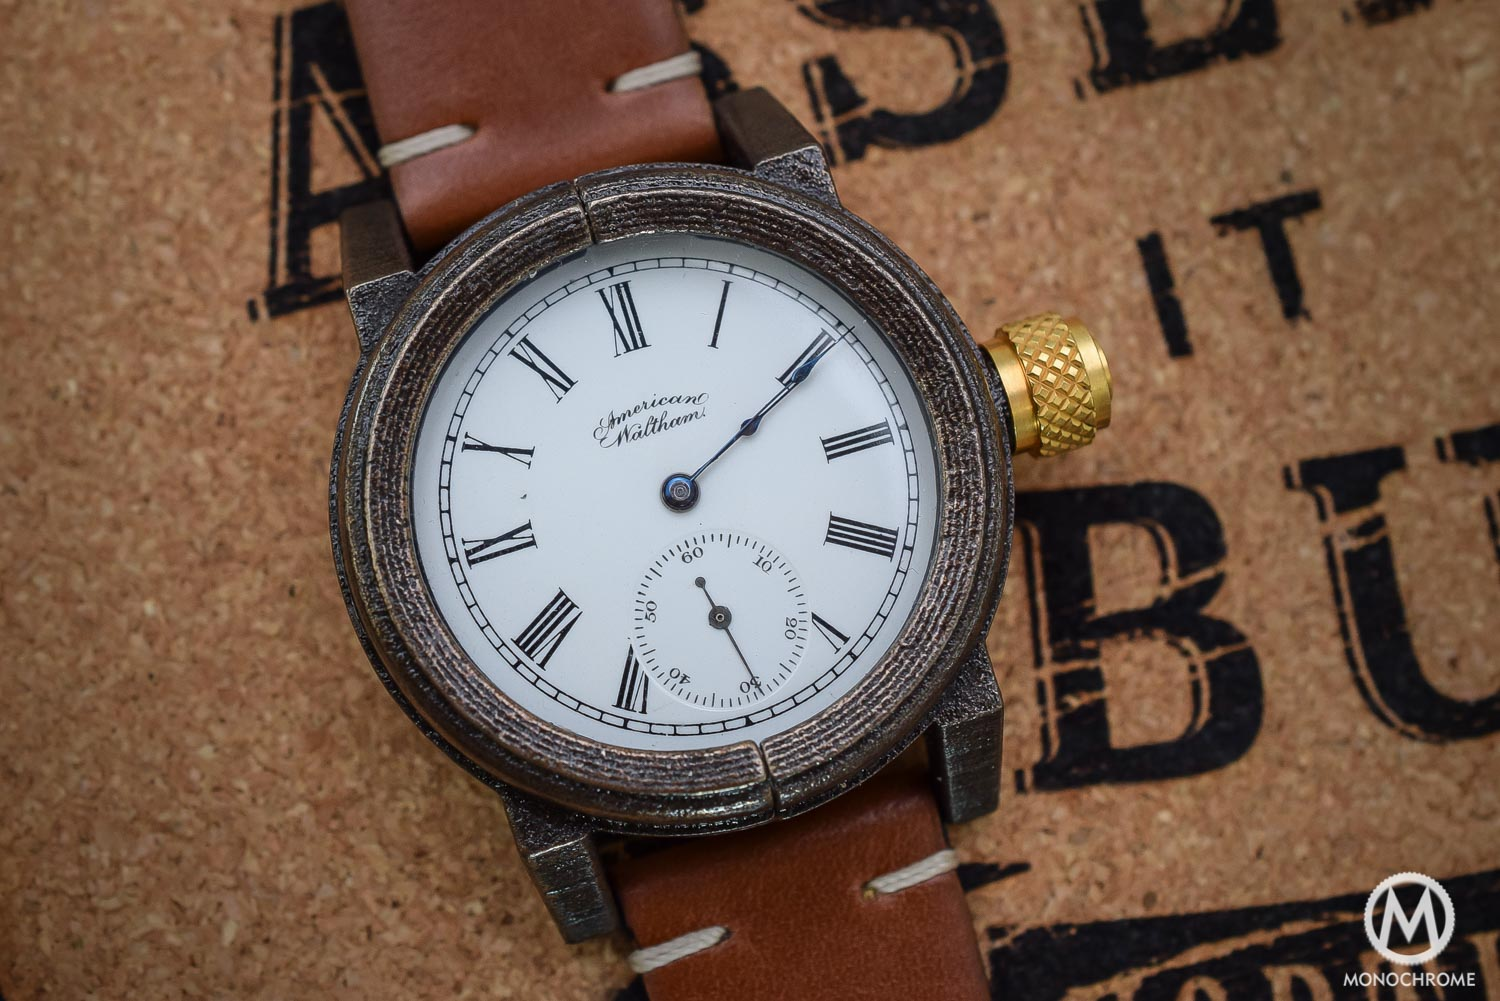 Vortic Watch Co - antique movements and 3D printed cases - 3